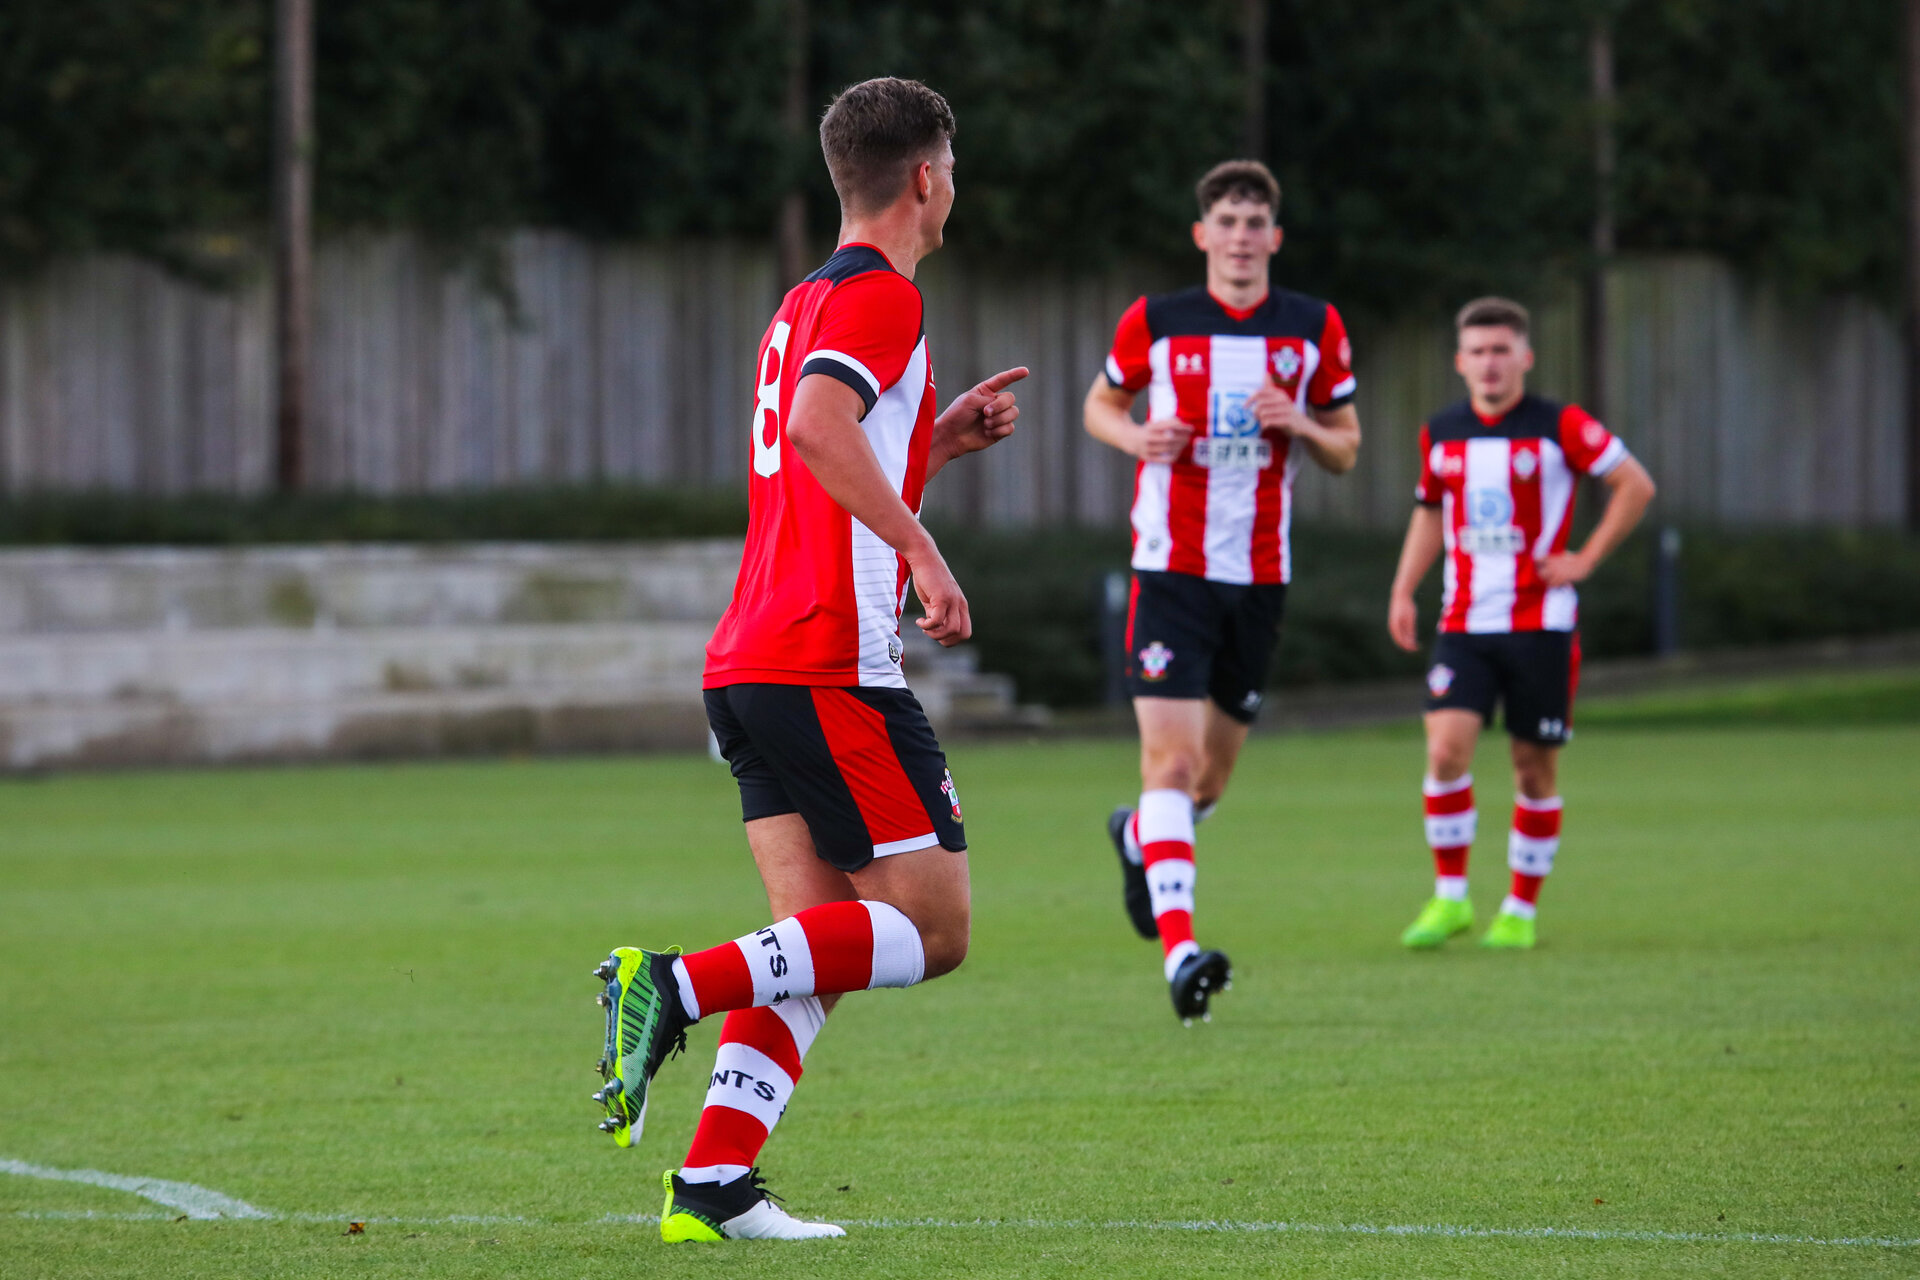 SOUTHAMPTON, ENGLAND - OCTOBER 19: Jack Turner of Southampton FC celebrates scoring Southampton's second goal during the Barclays Under 18 Premier League match between Southampton FC and Leicester City at the Staplewood Campus on October 19, 2019 in Southampton, England